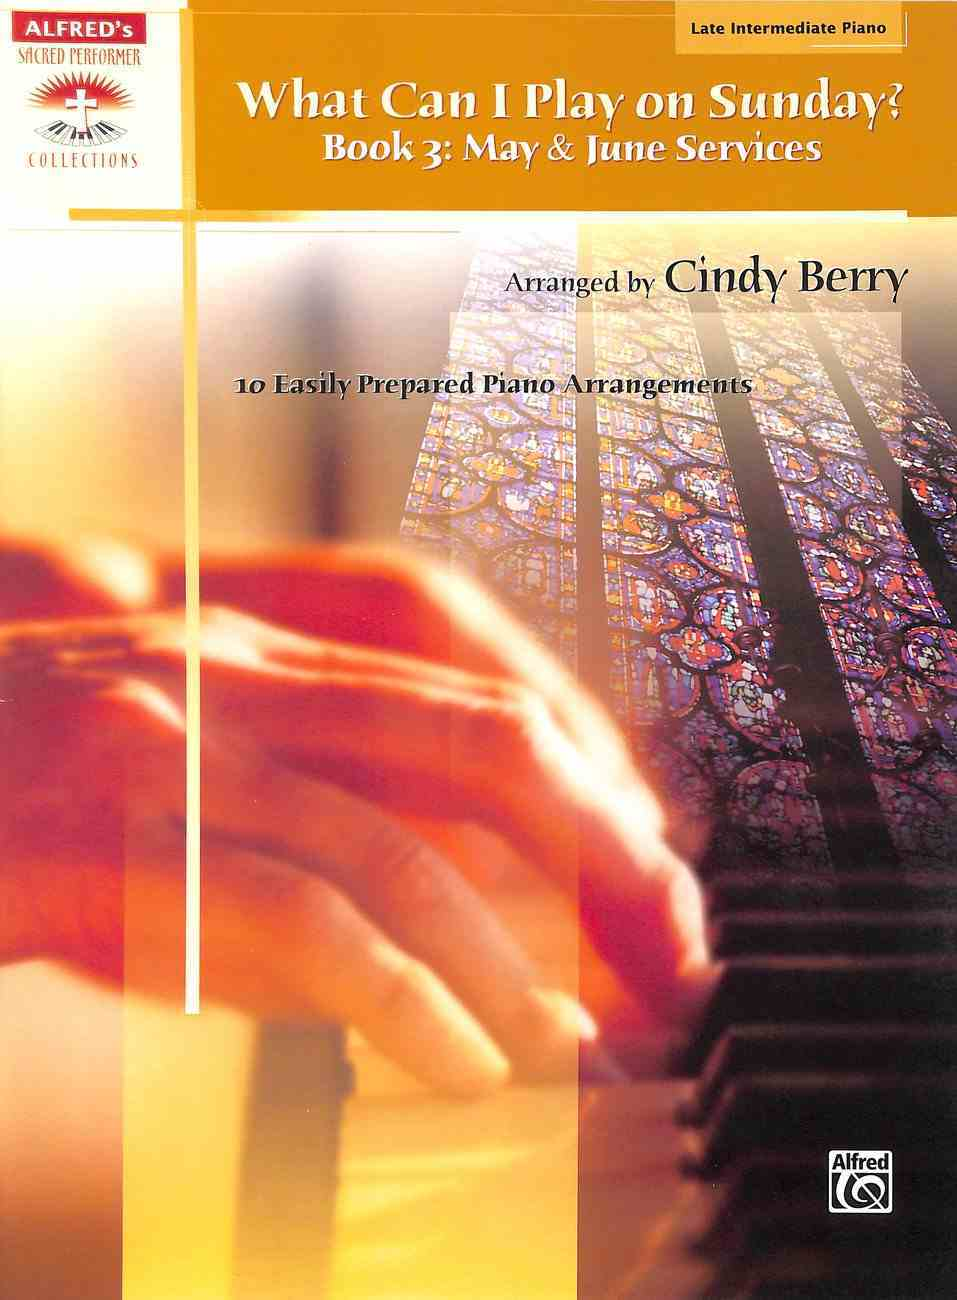 What Can I Play on Sunday? Book 3: May & June Services, 10 Easily Prepared Piano Arrangements (Late Intermediate Piano) (Music Book) Paperback